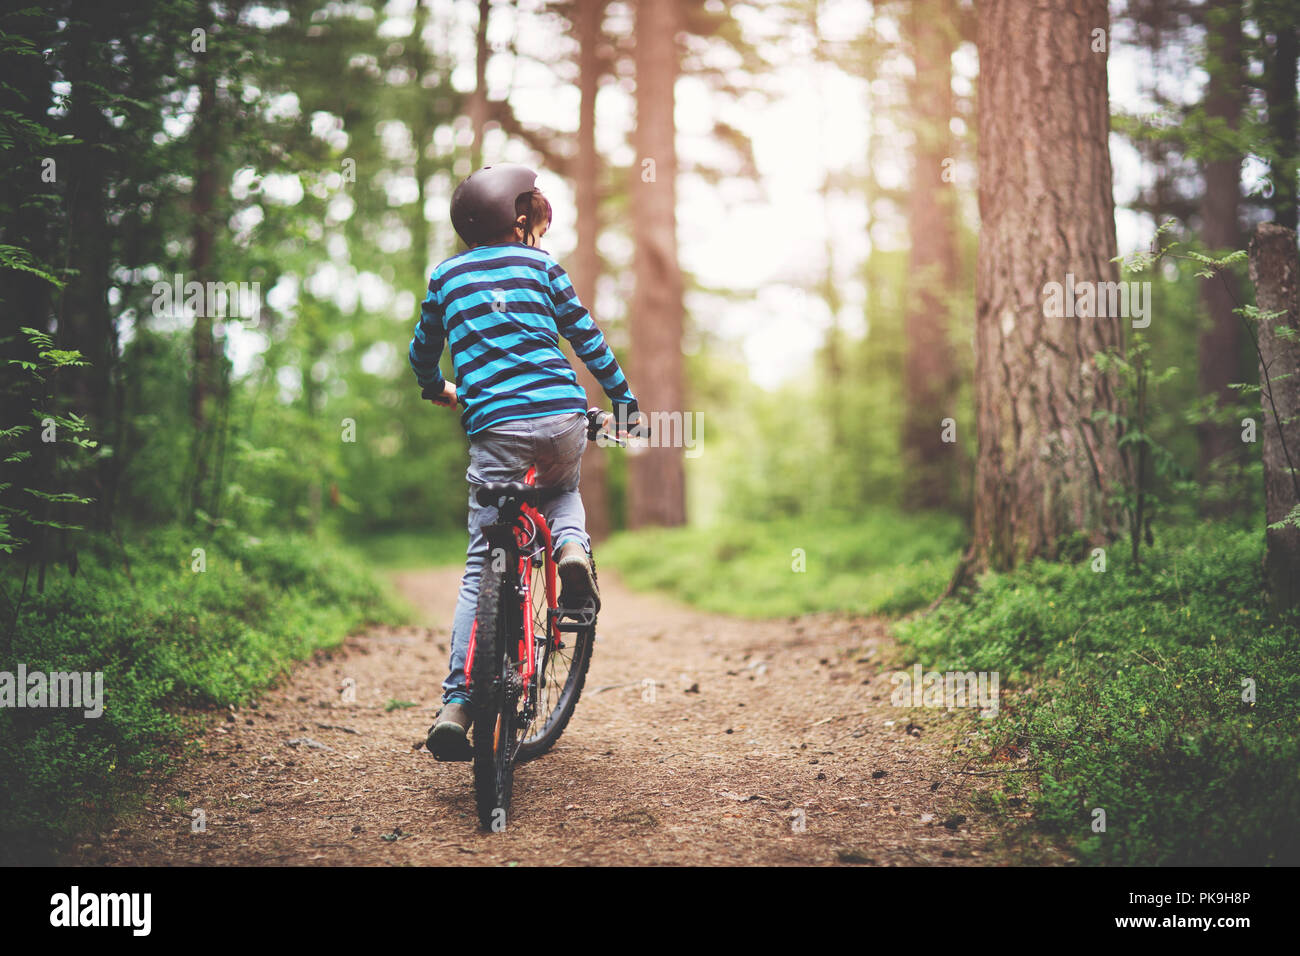 child on a bicycle in the forest in early morning - Stock Image